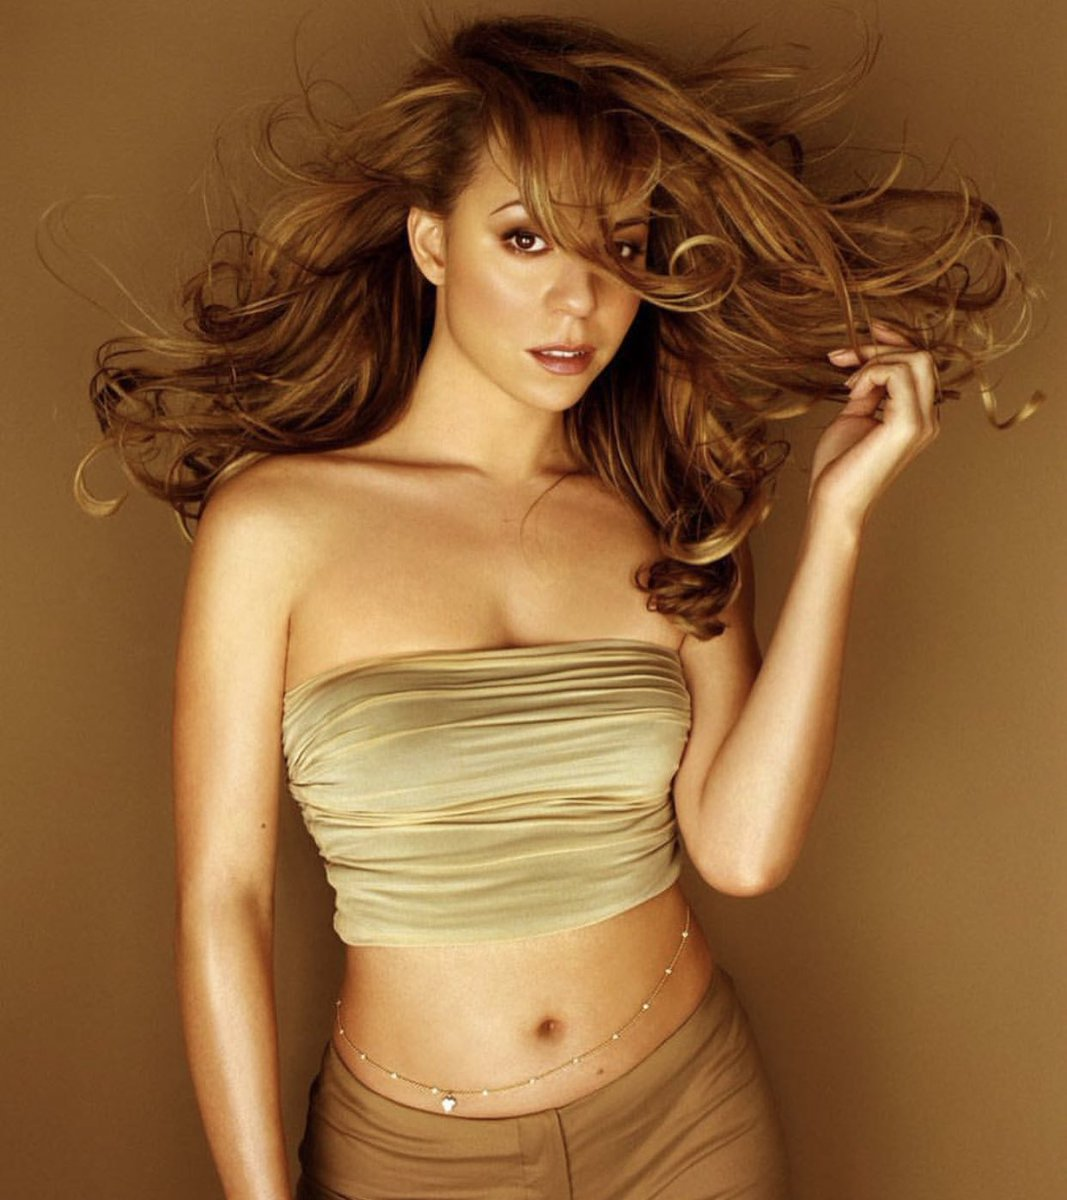 22 years ago today, Mariah Carey dropped her sixth studio album Butterfly  <br>http://pic.twitter.com/2pkZE8t3sk